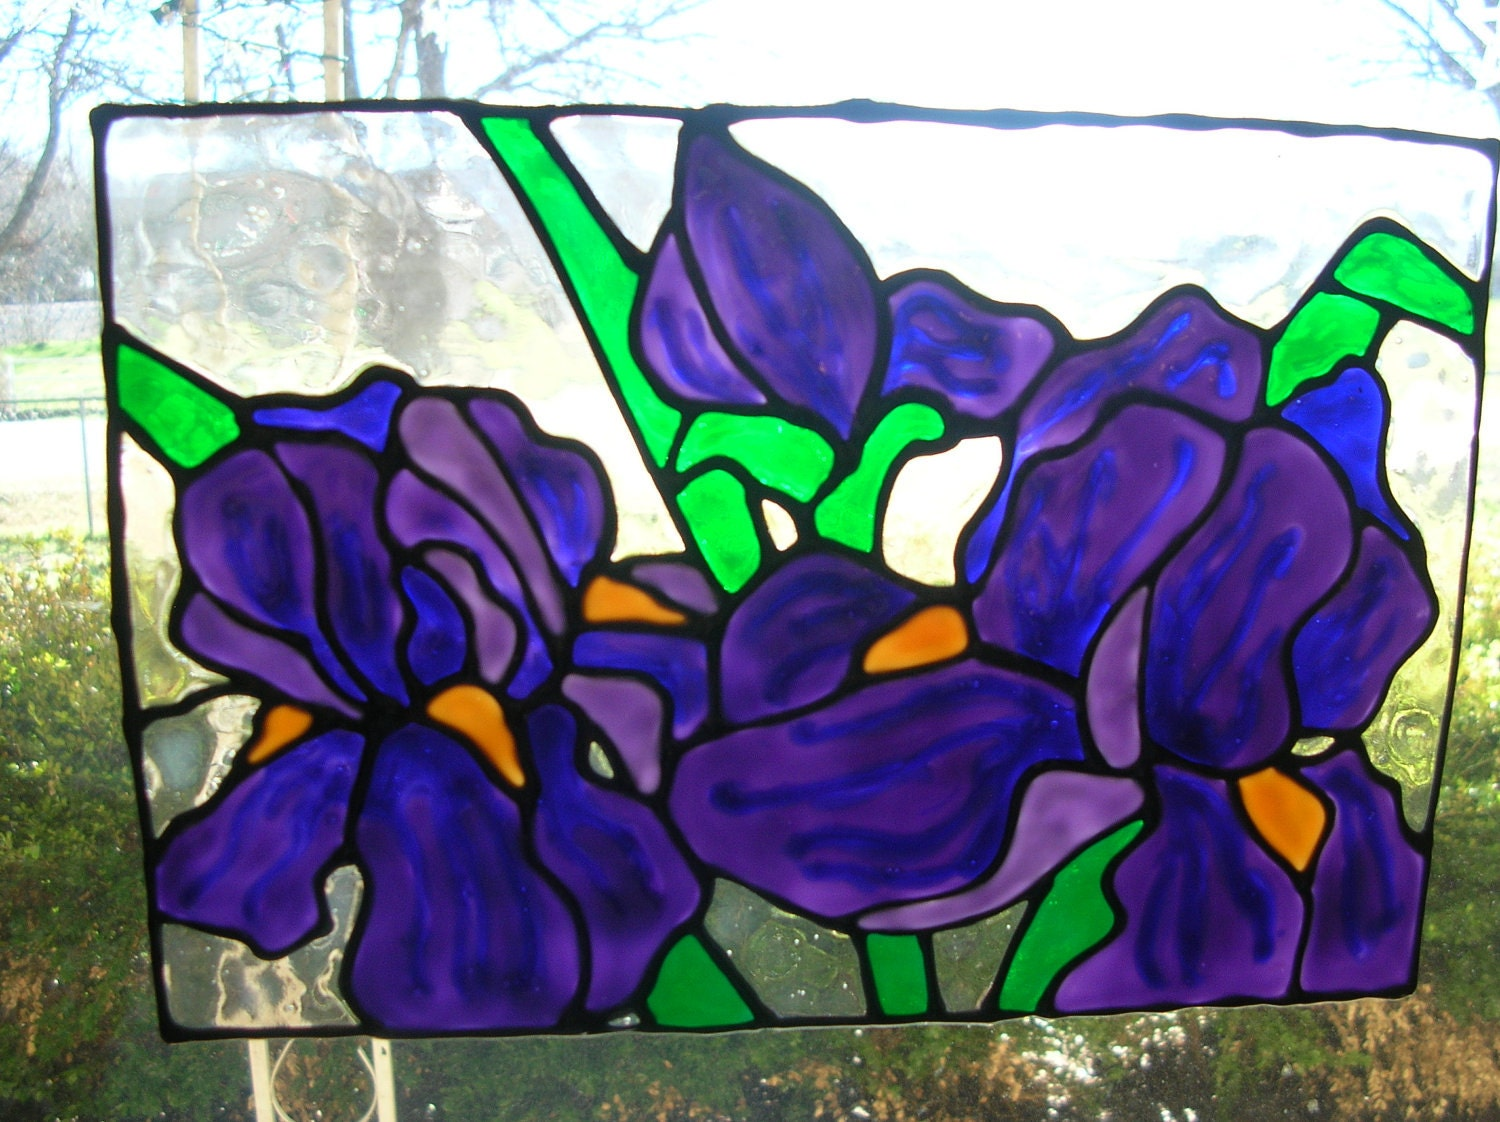 irises flowers stained glass window cling. Black Bedroom Furniture Sets. Home Design Ideas